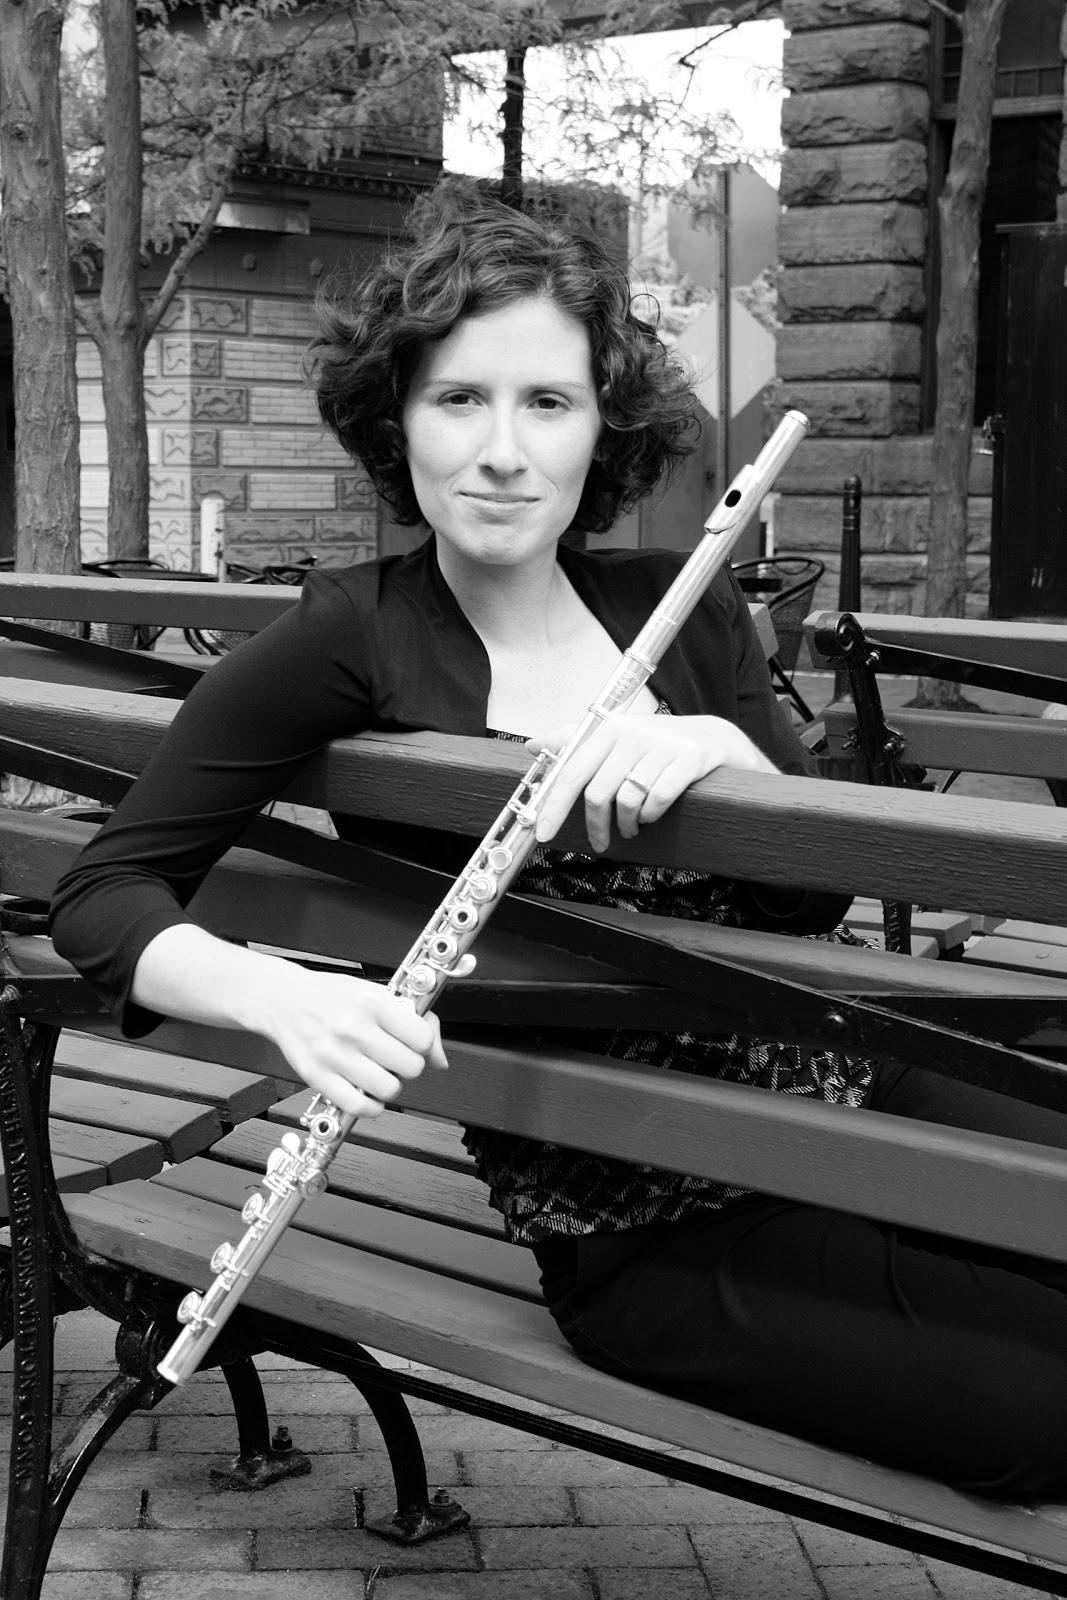 black & white: Alexis Del Palazzo, her flute, seated on bench w/ a smirk.